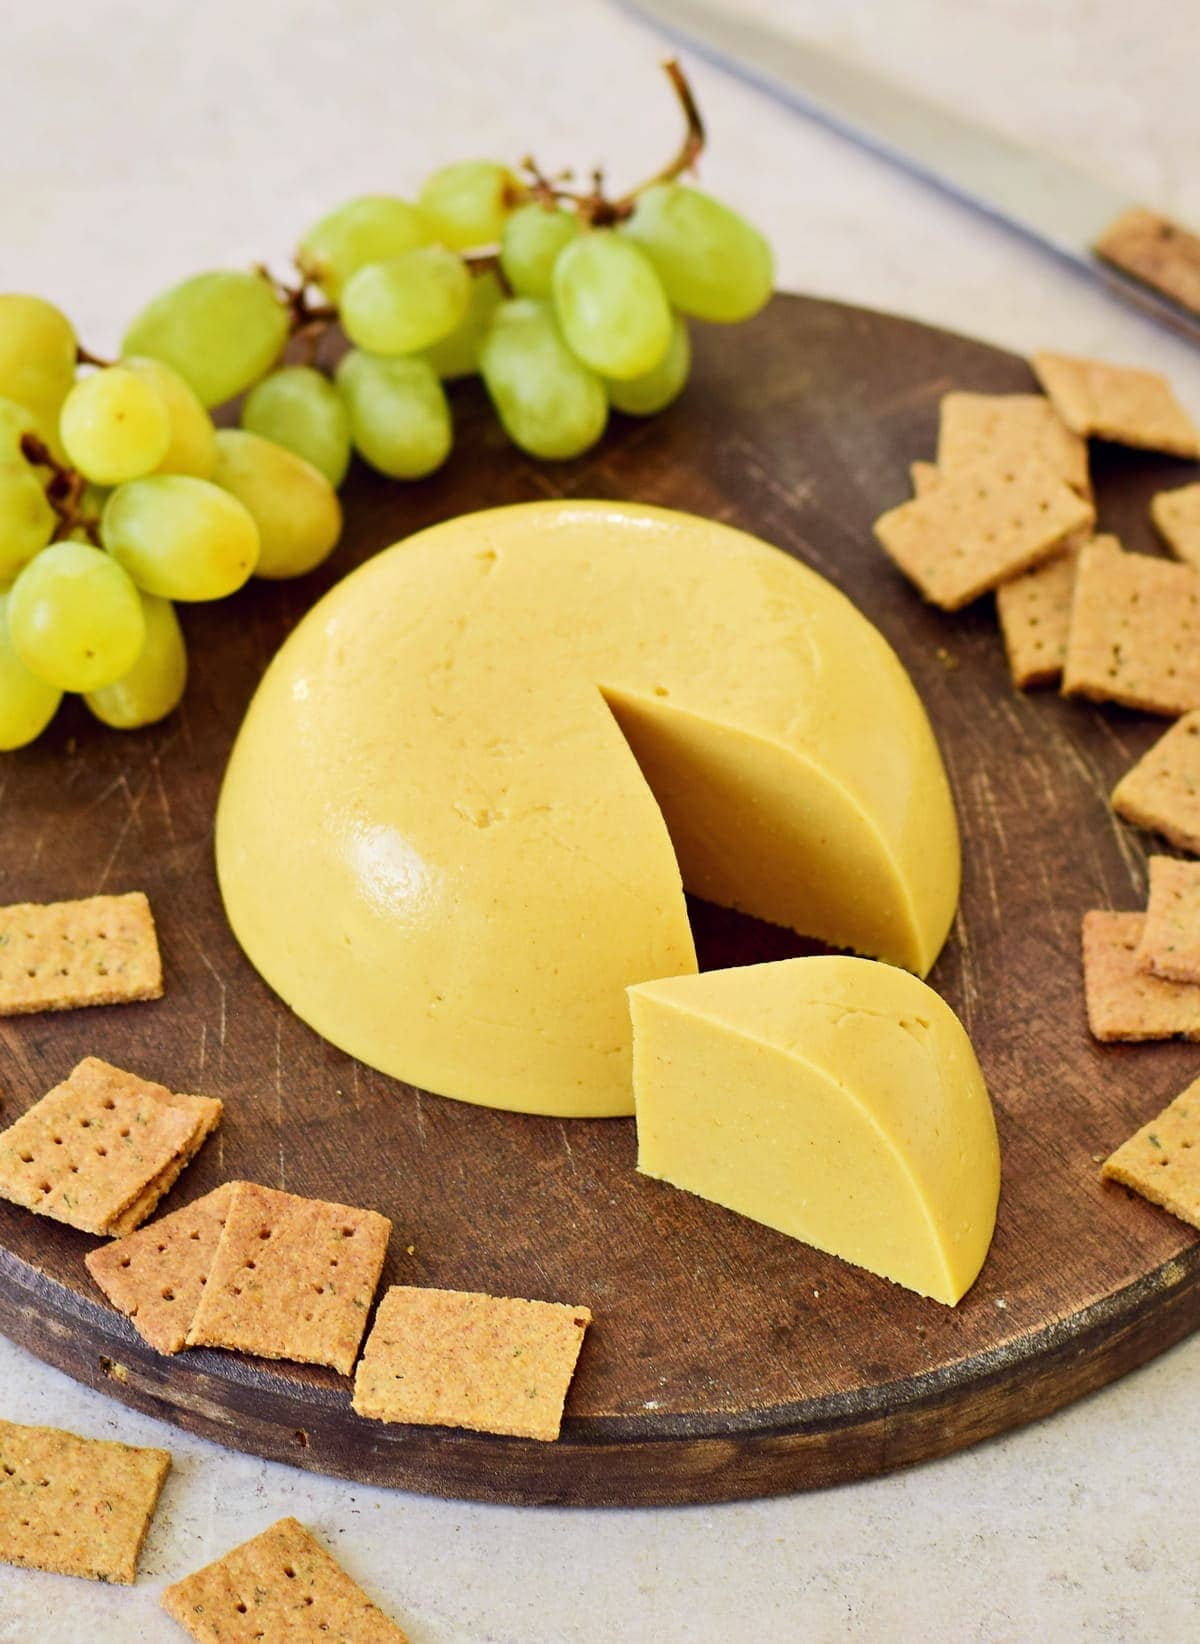 dairy-free cheese on wooden board with a piece cut out